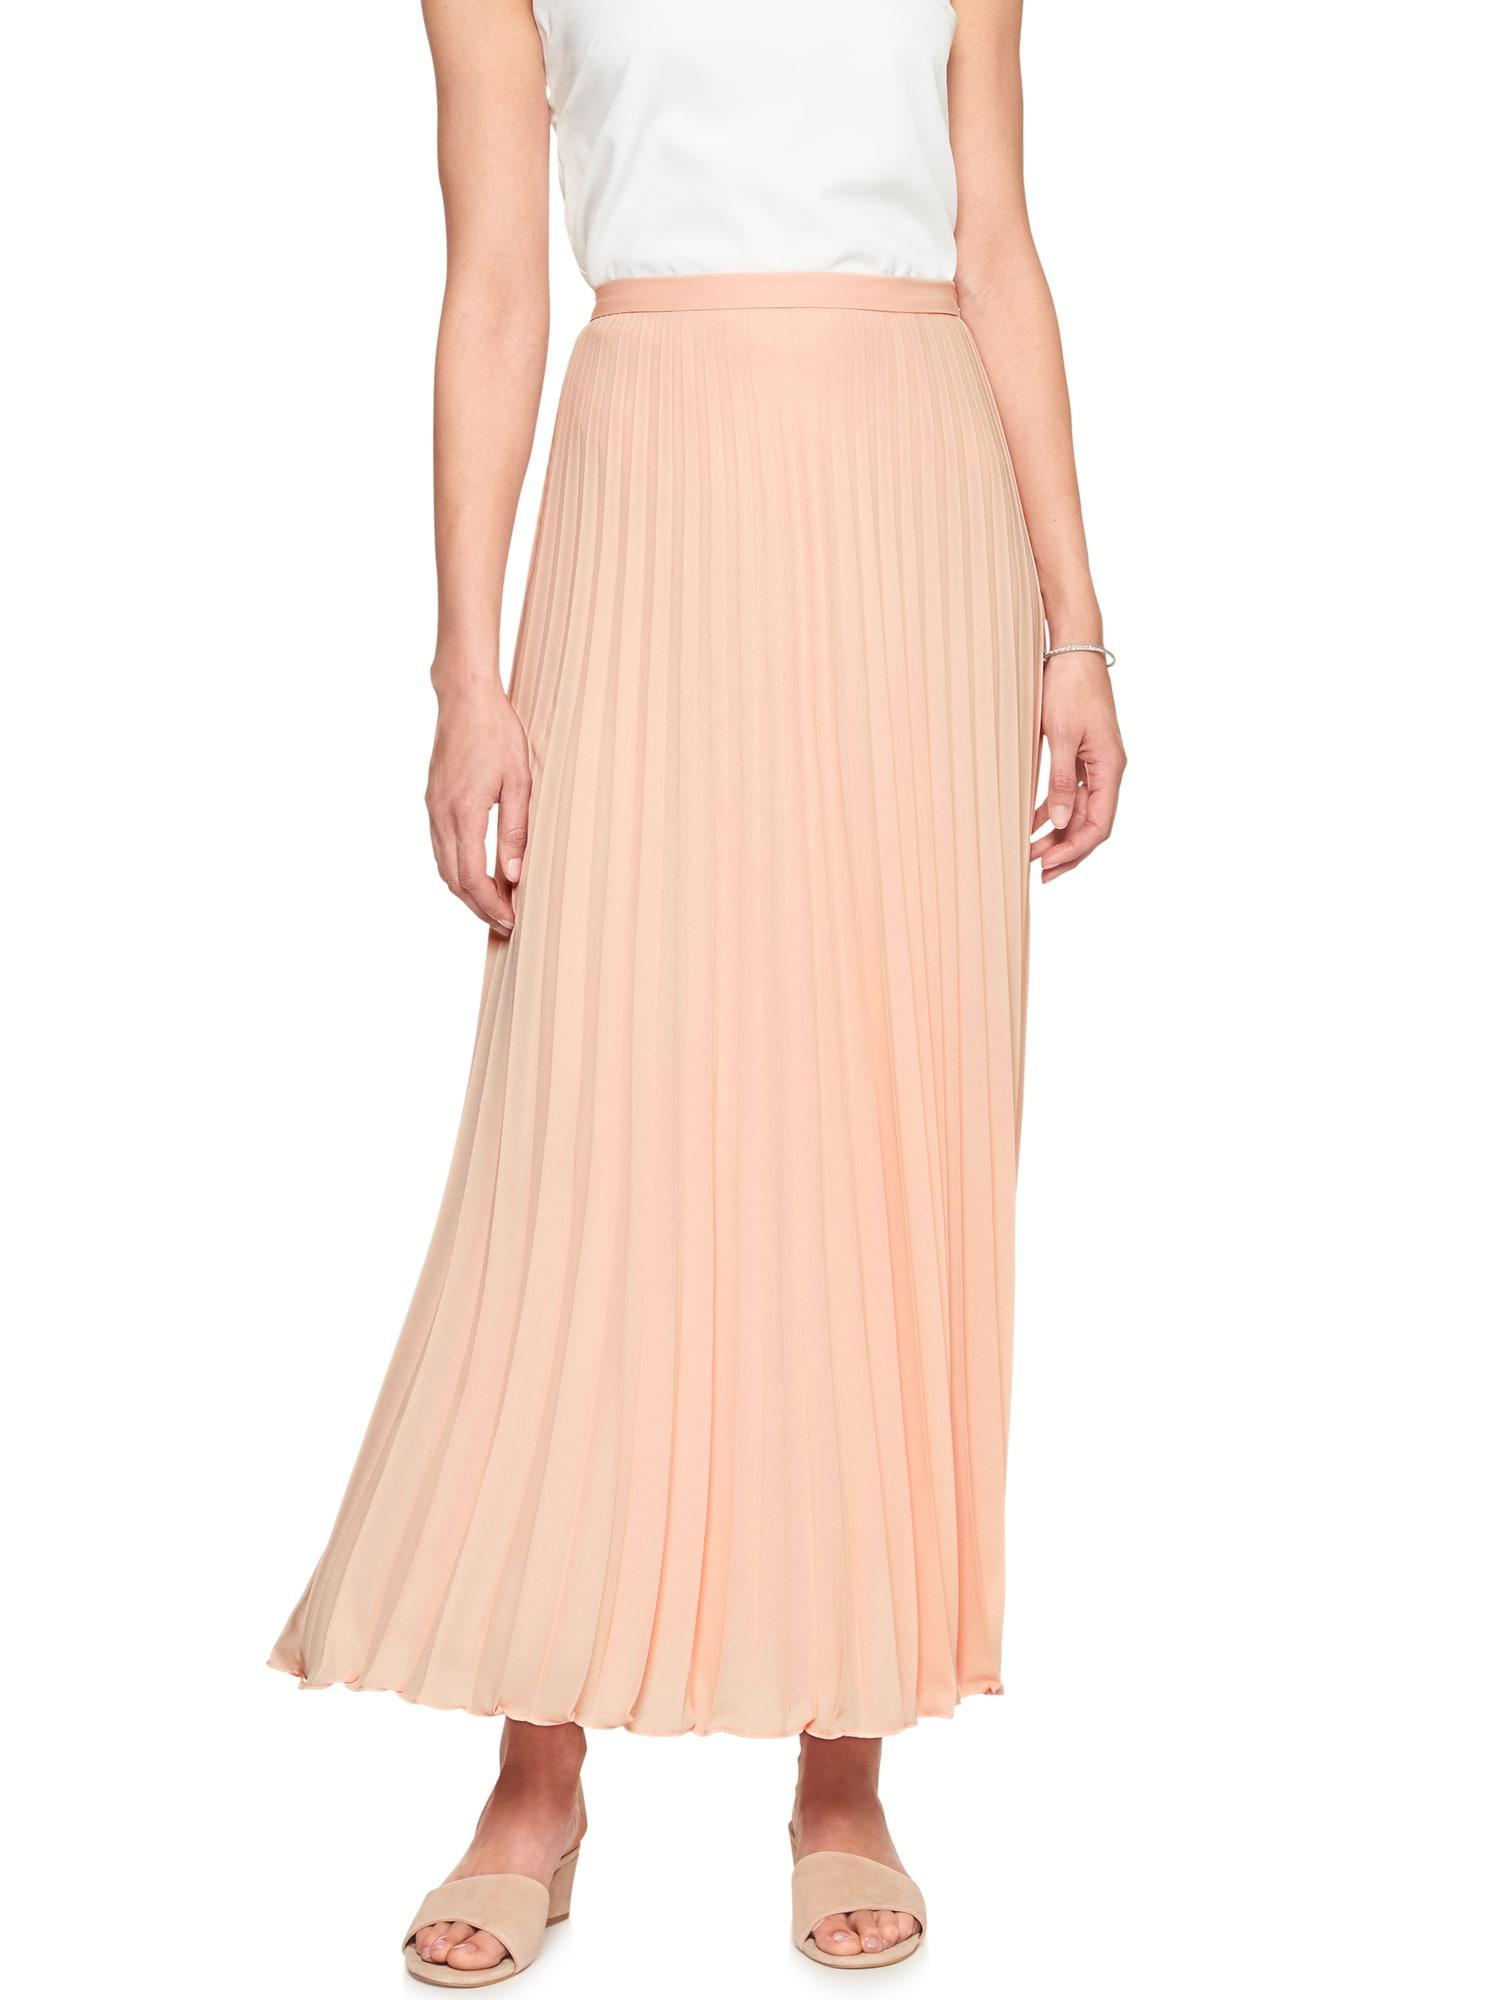 1d20a602f Gallery. Previously sold at: Banana Republic Factory · Women's Pleated  Skirts ...